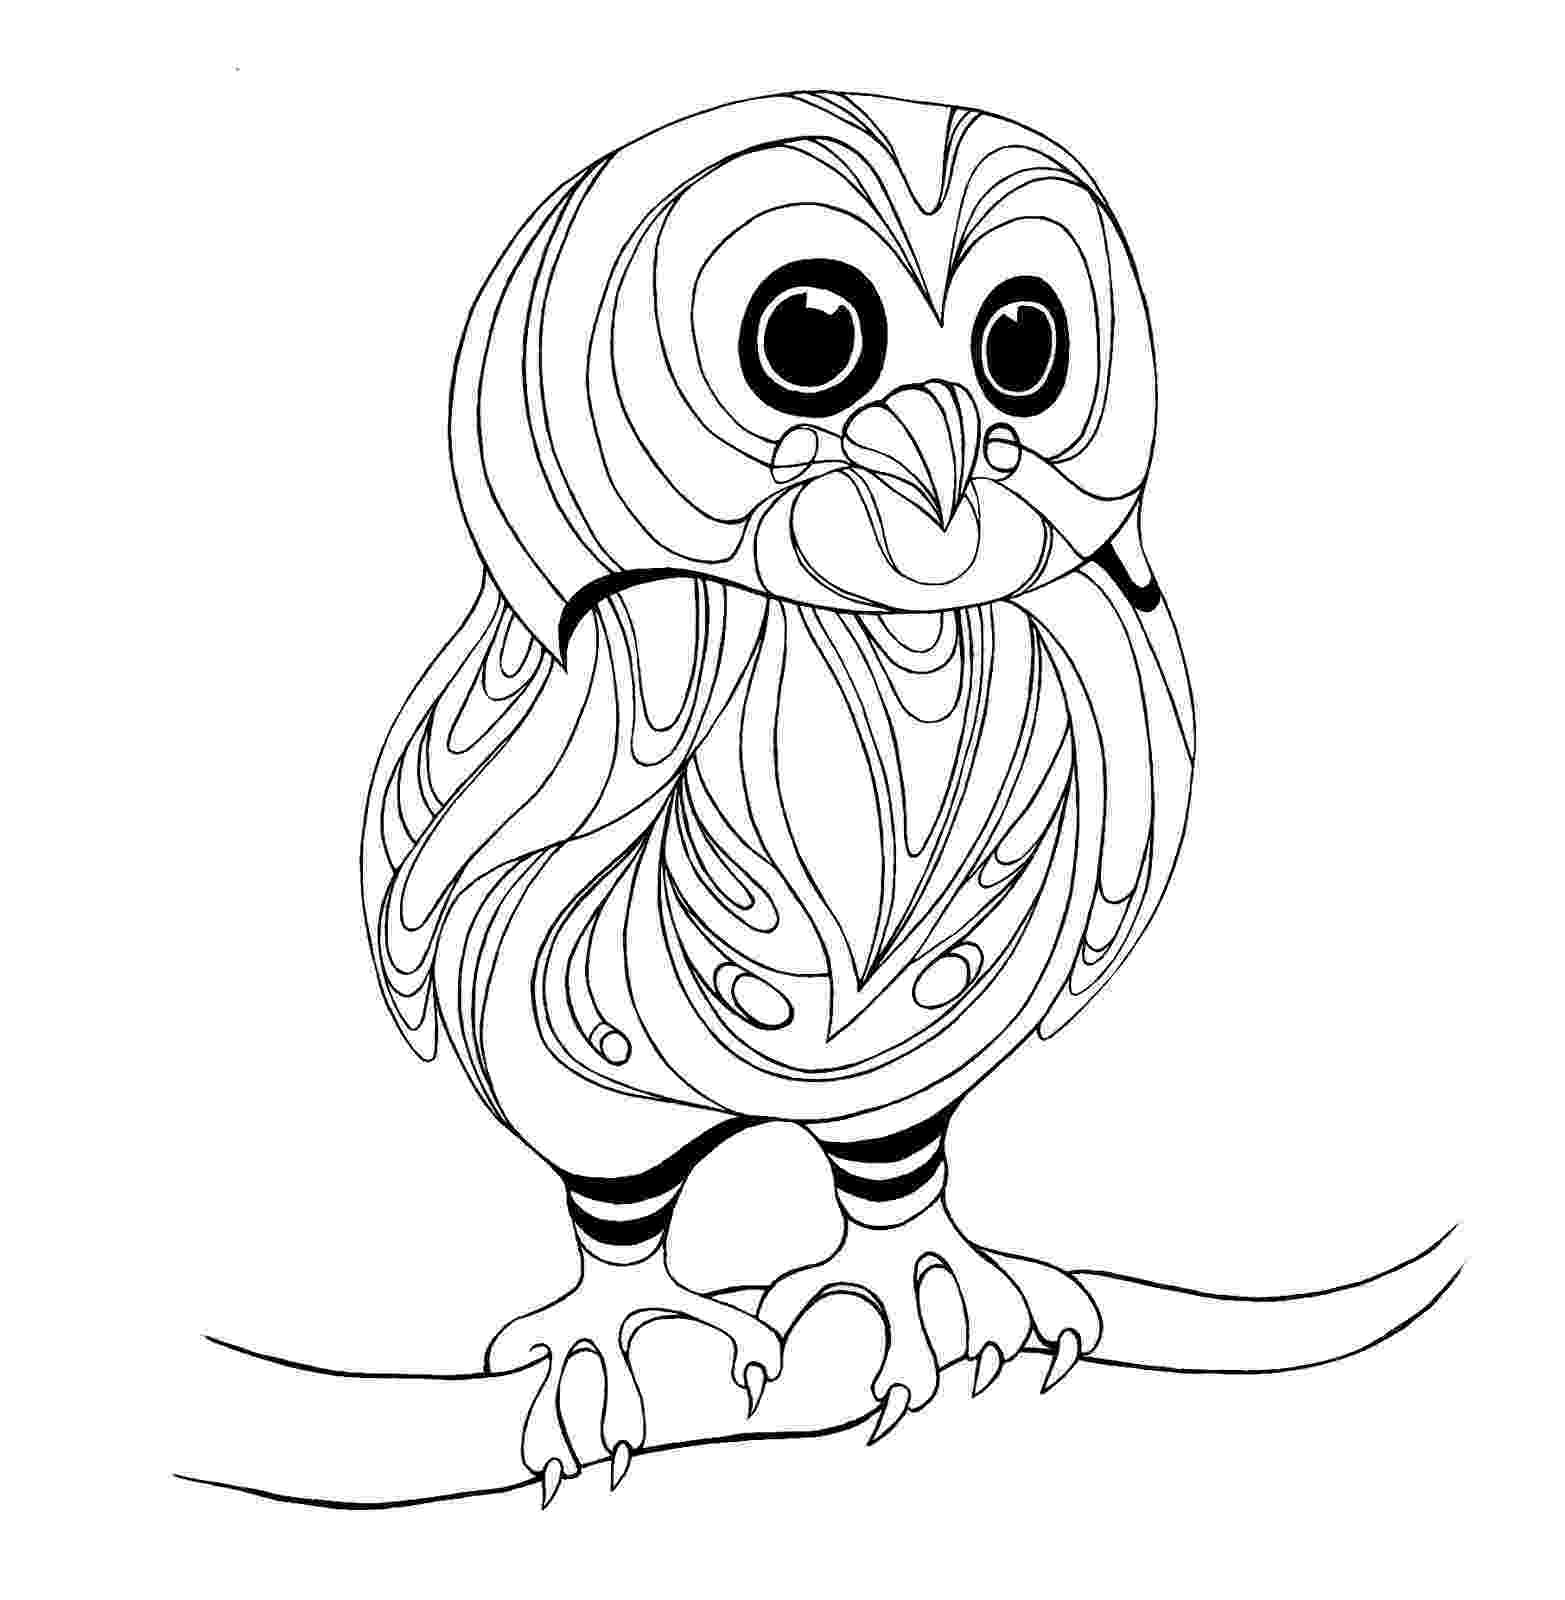 owl coloring picture owl coloring pages kidsuki owl picture coloring